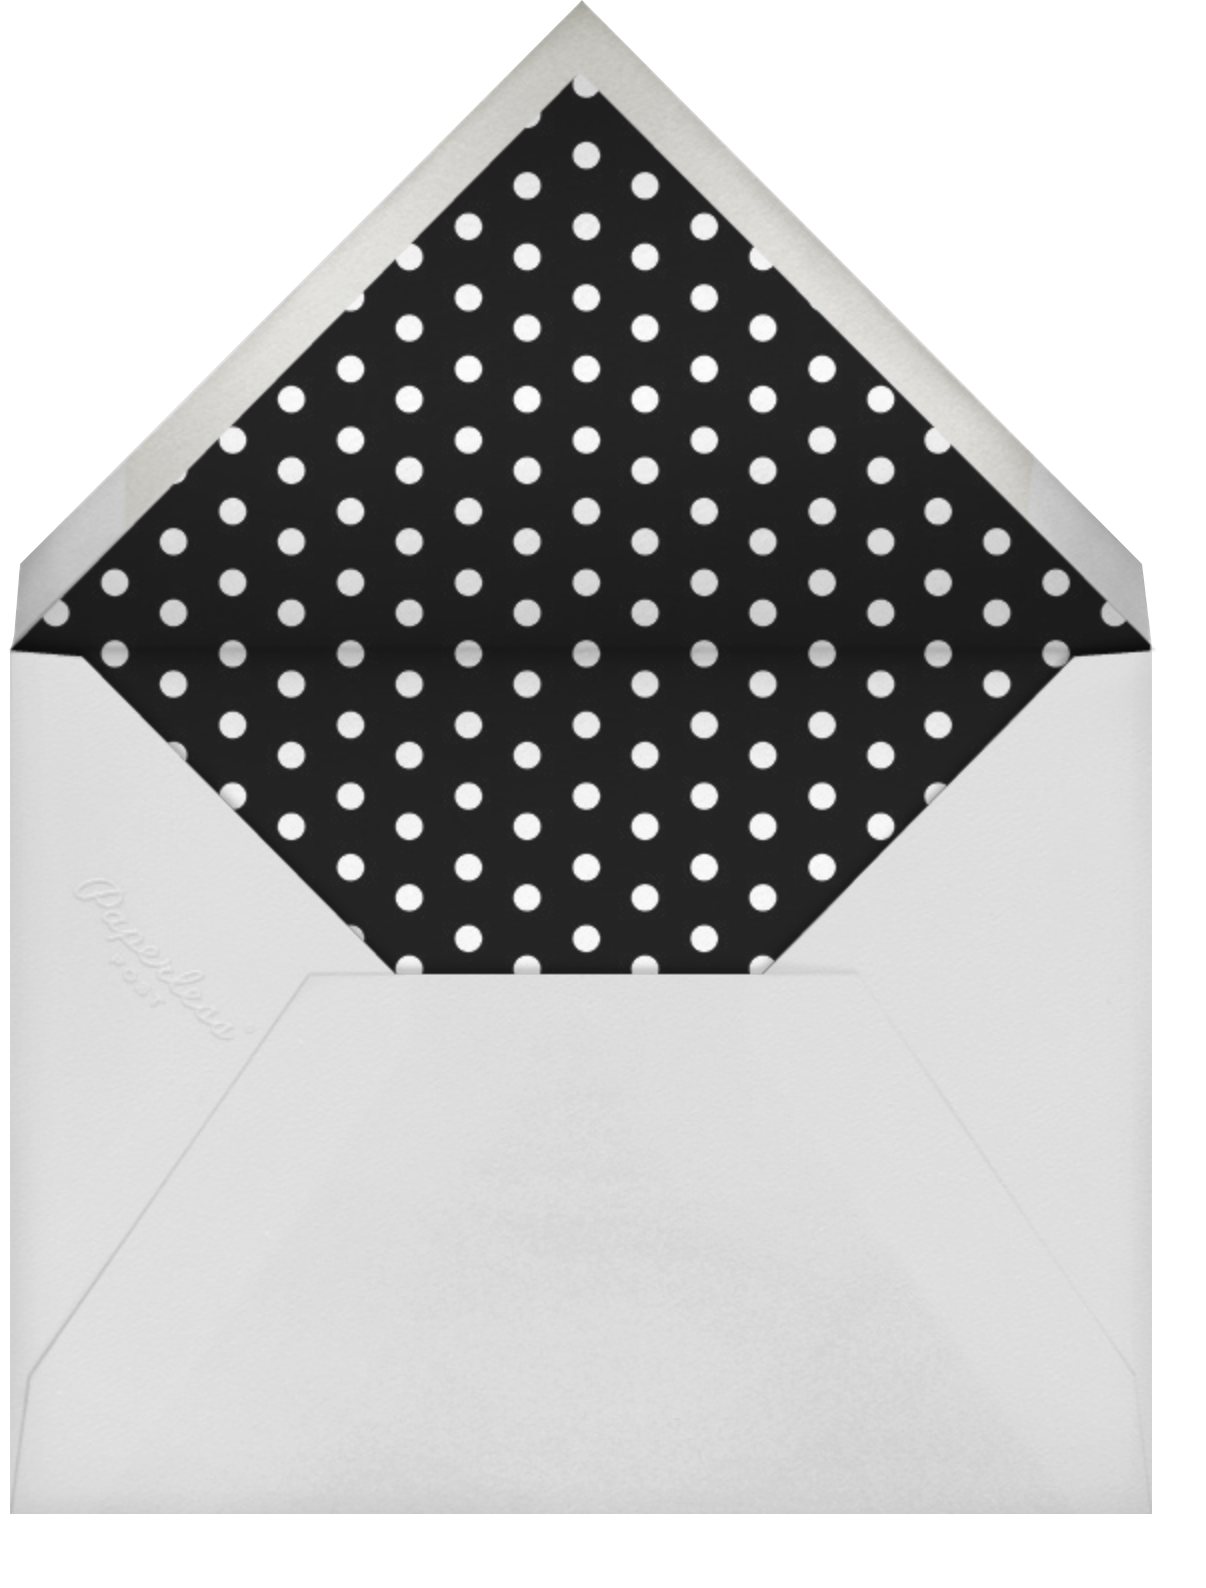 Queen for a Day - Fair - Rifle Paper Co. - Envelope